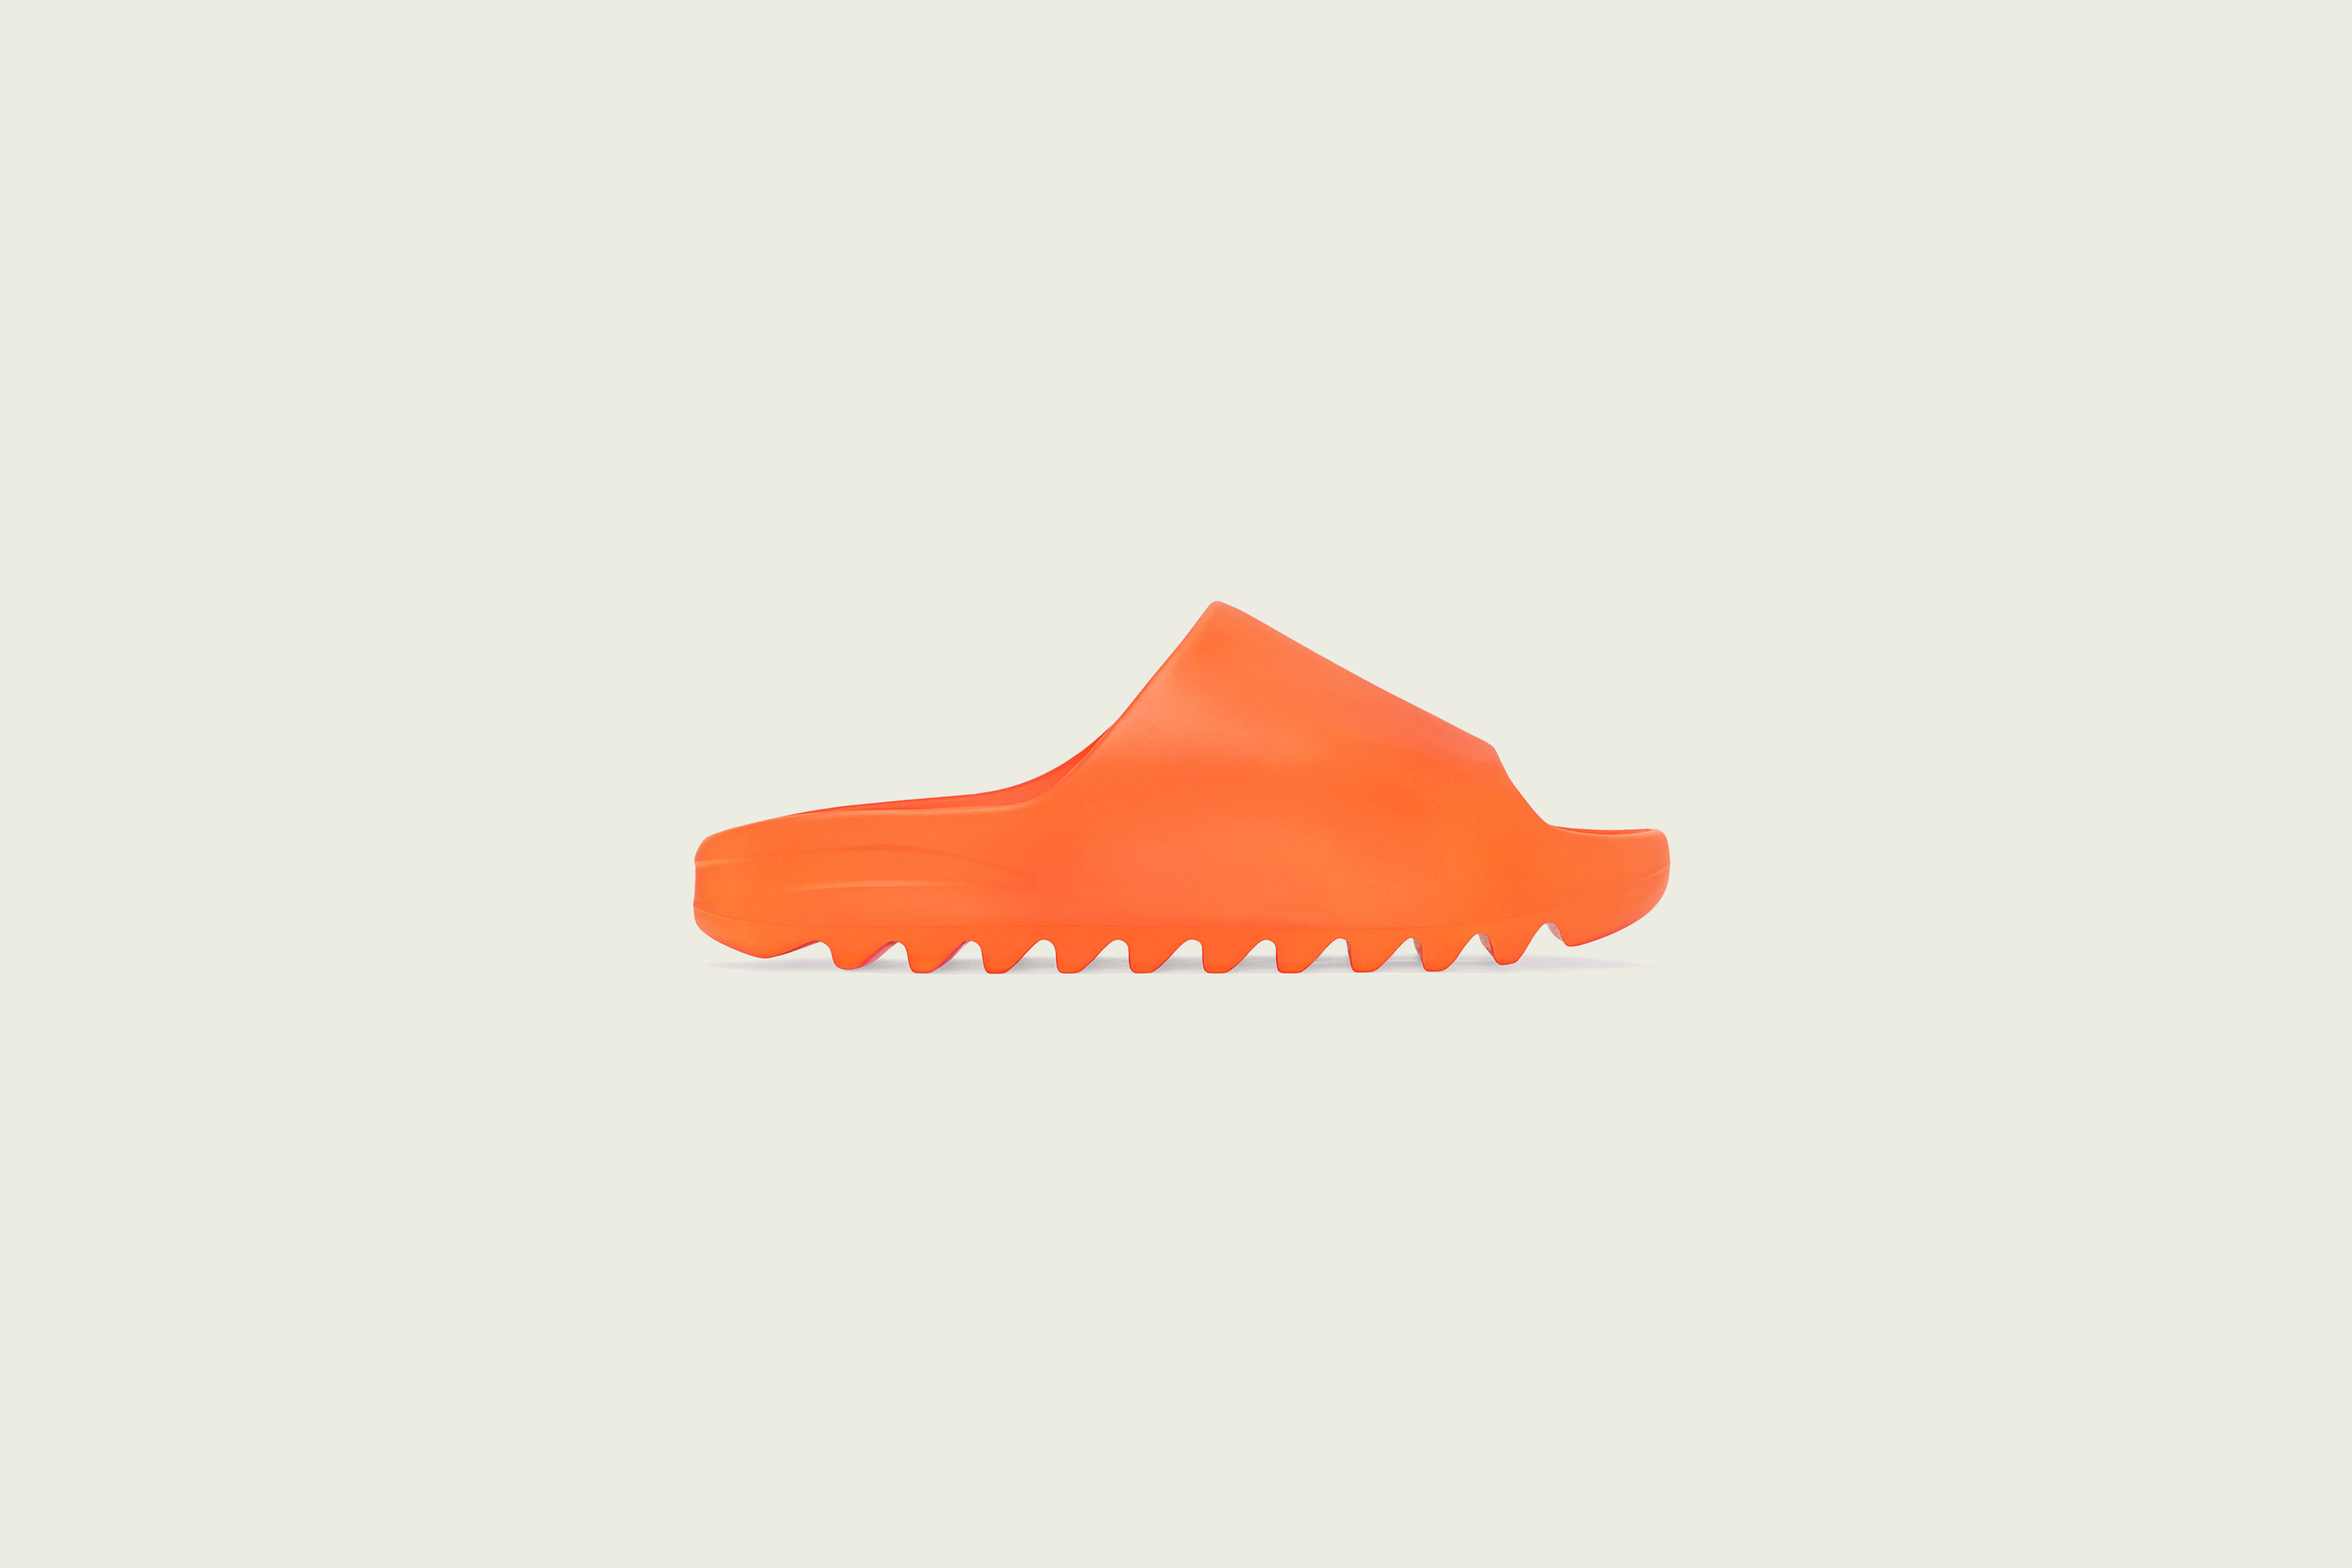 adidas - Yeezy Slide - Enflame Orange - Up There